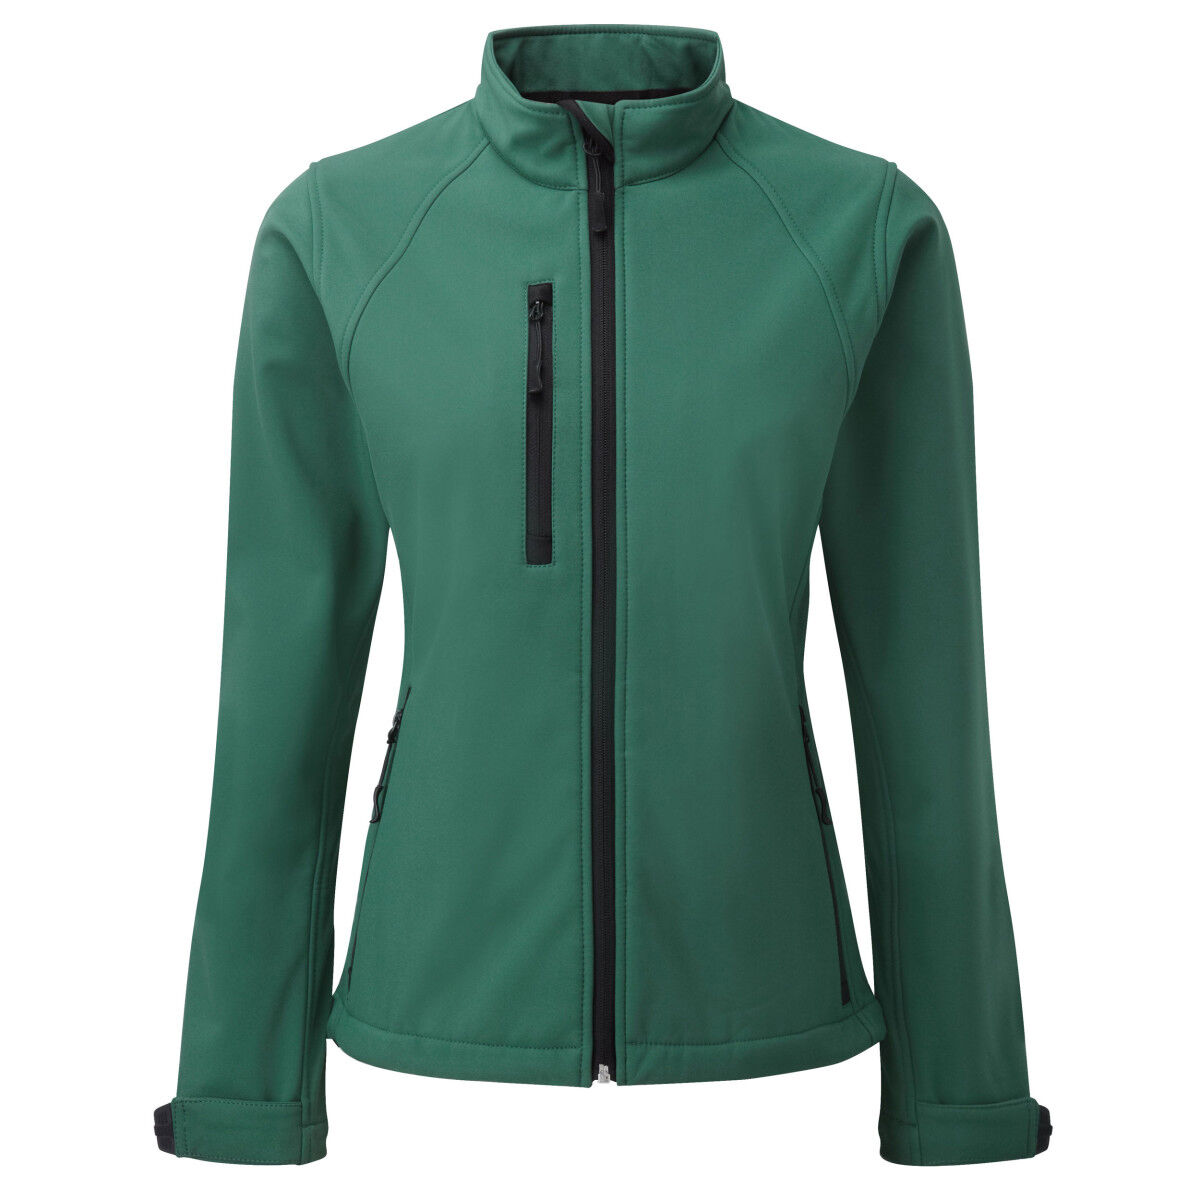 Russell Ladies Soft Shell Jacket - Cactus Green